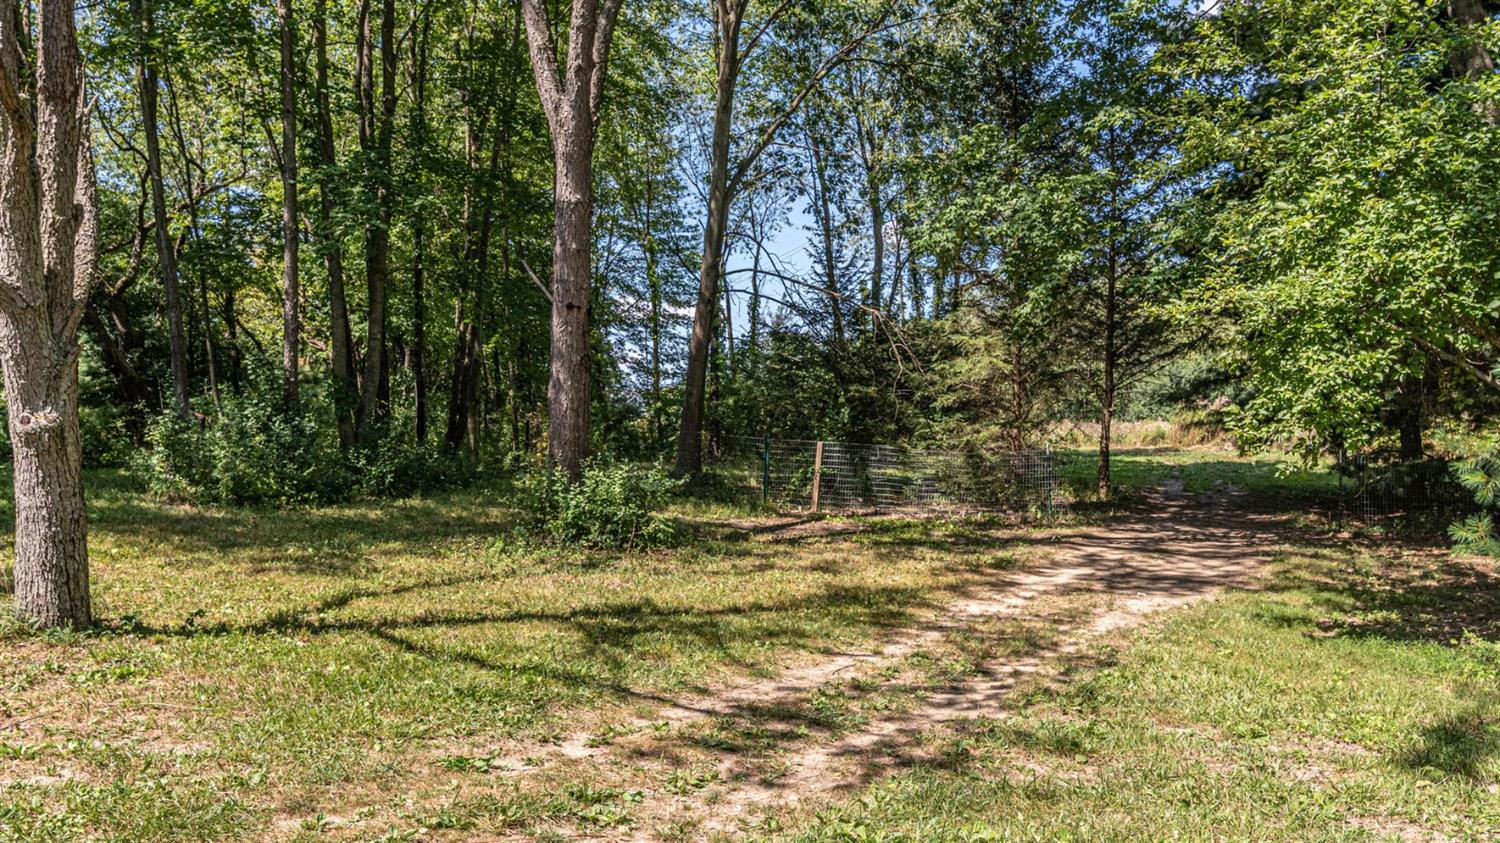 walking trails at 8220 n warner rd, a saline country home